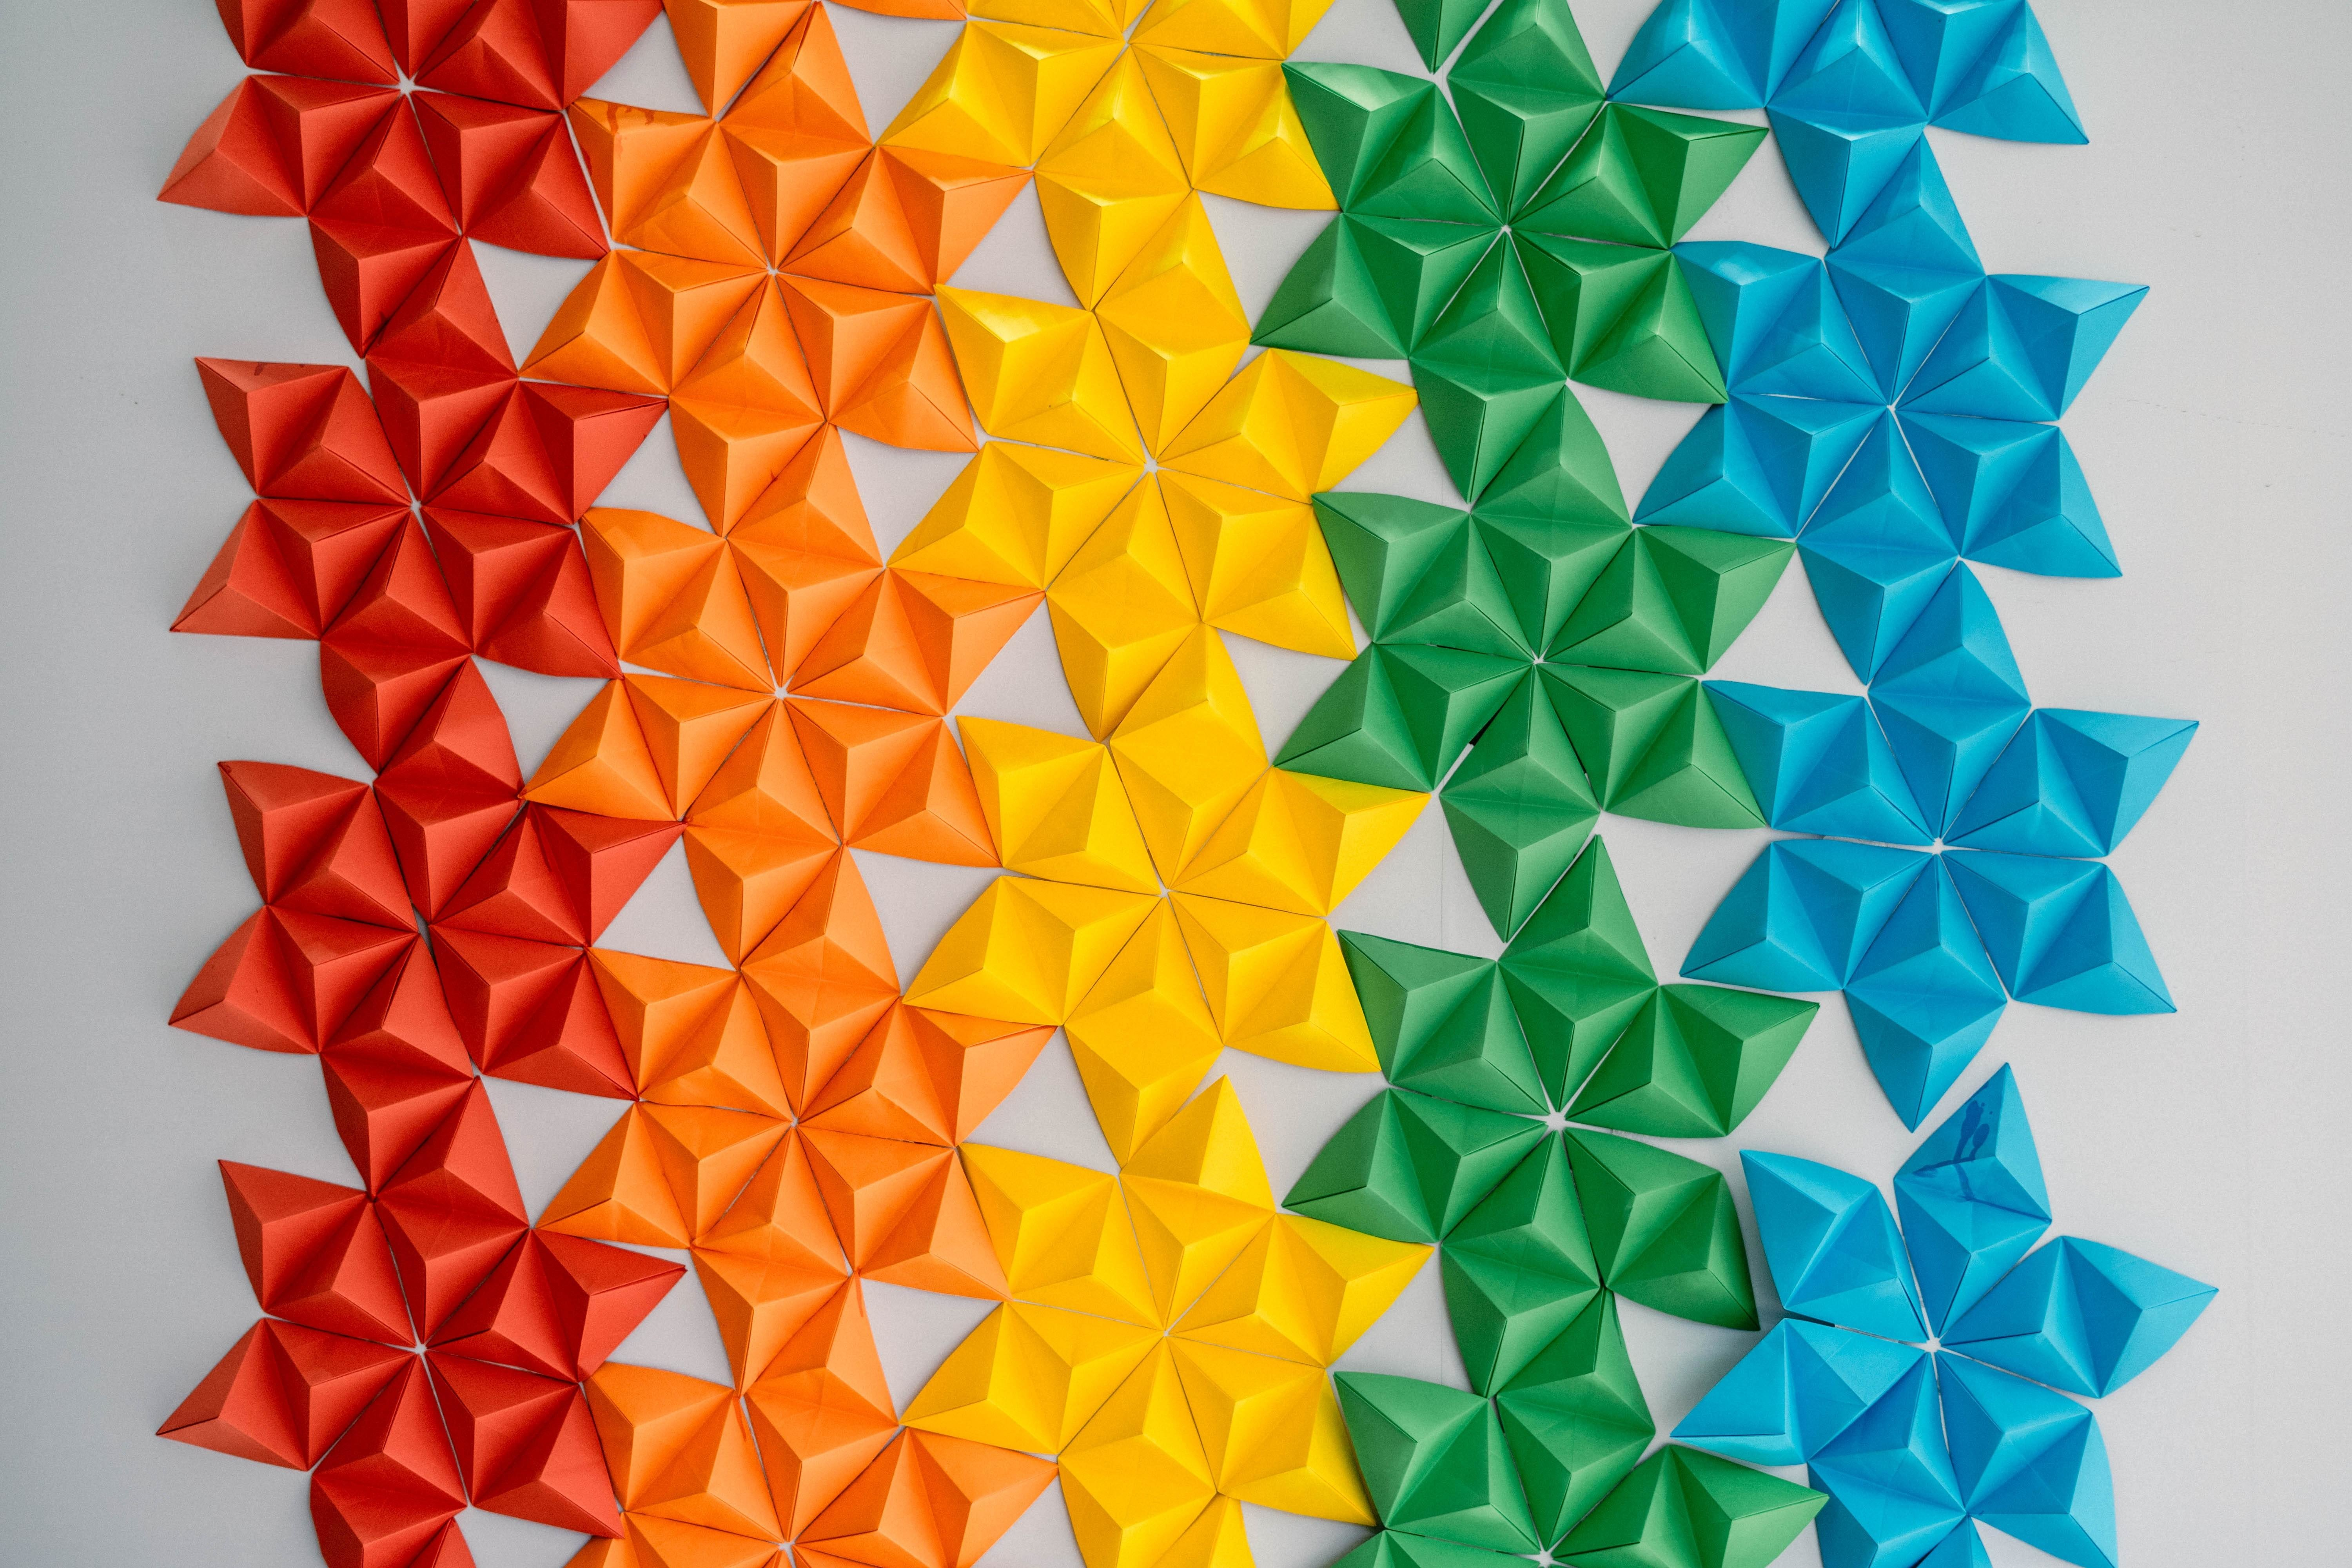 The method Kirigami, which is a variation of the origami you can see above, has inspired scientists to research a range of new and innovative structures